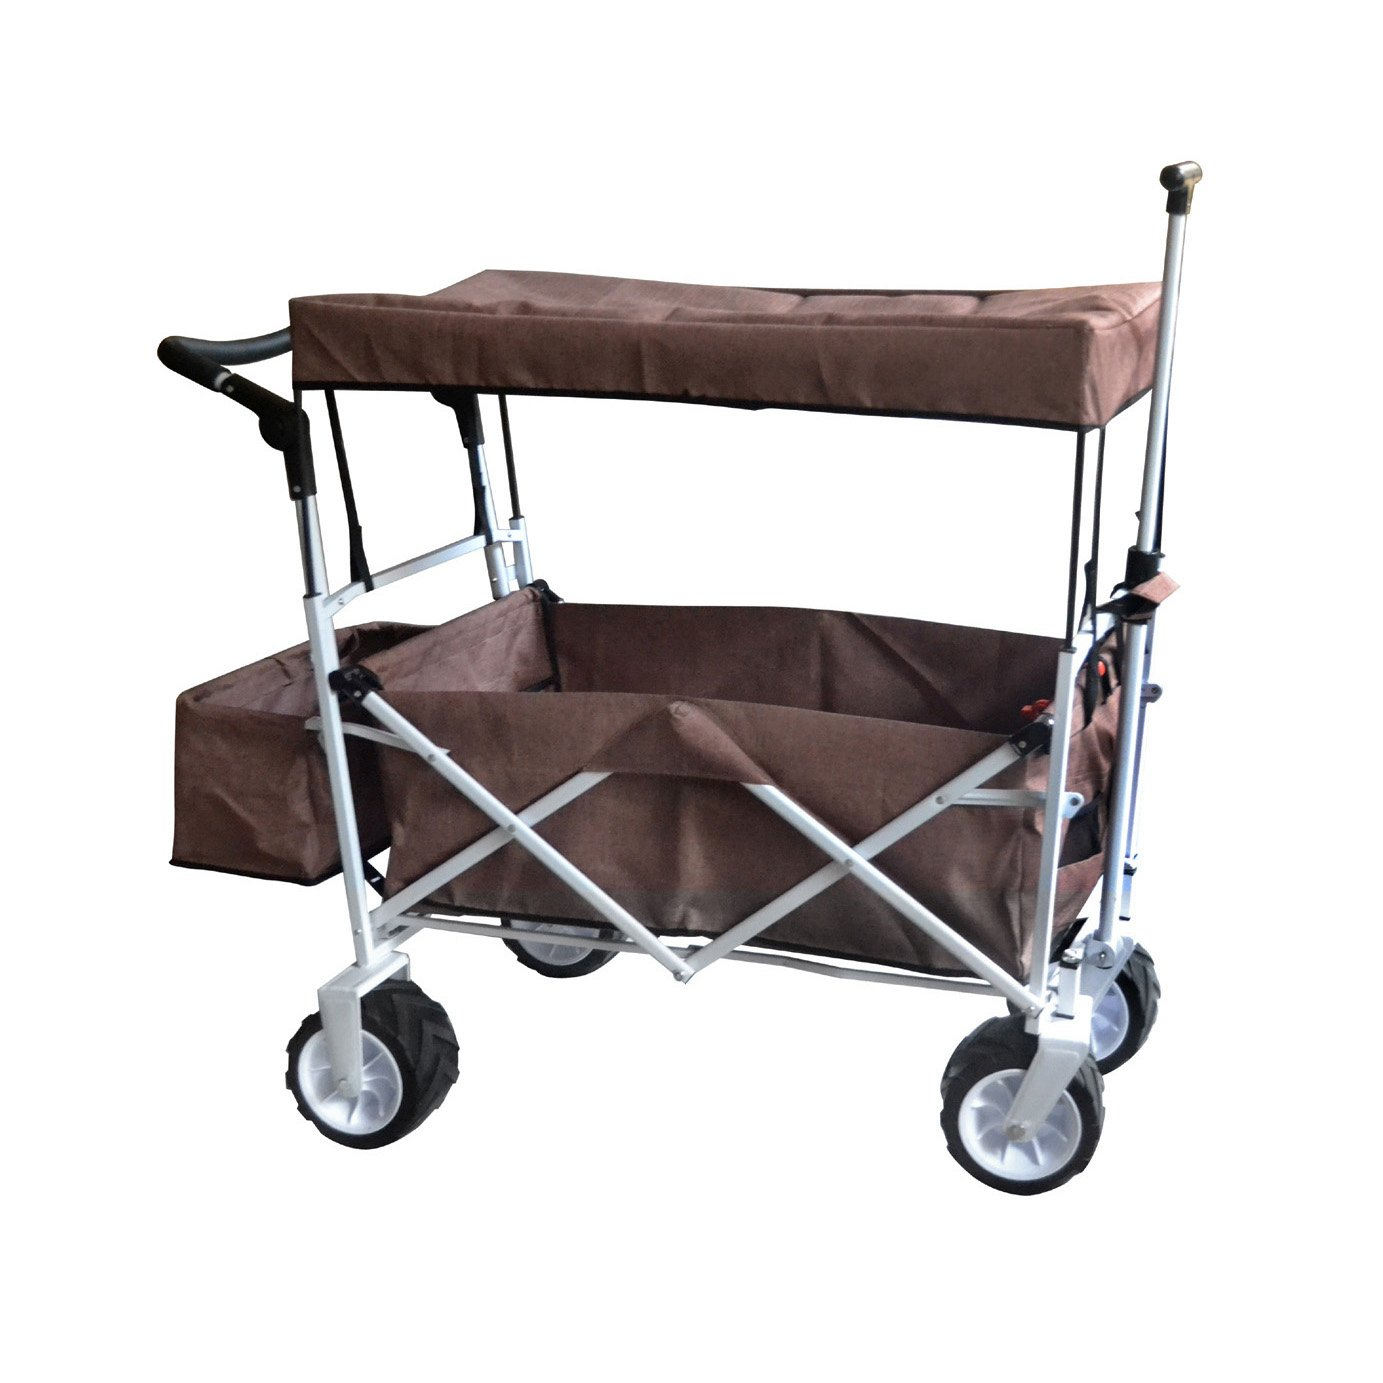 Brown Push and Pull Handle Folding Stroller Wagon Outdoor Beach Sport Collapsible Baby Trolley W/Canopy Gray Garden Utility Shopping Travel CART - Free ICE Cooler Bag - Easy Setup NO Tool Necessary